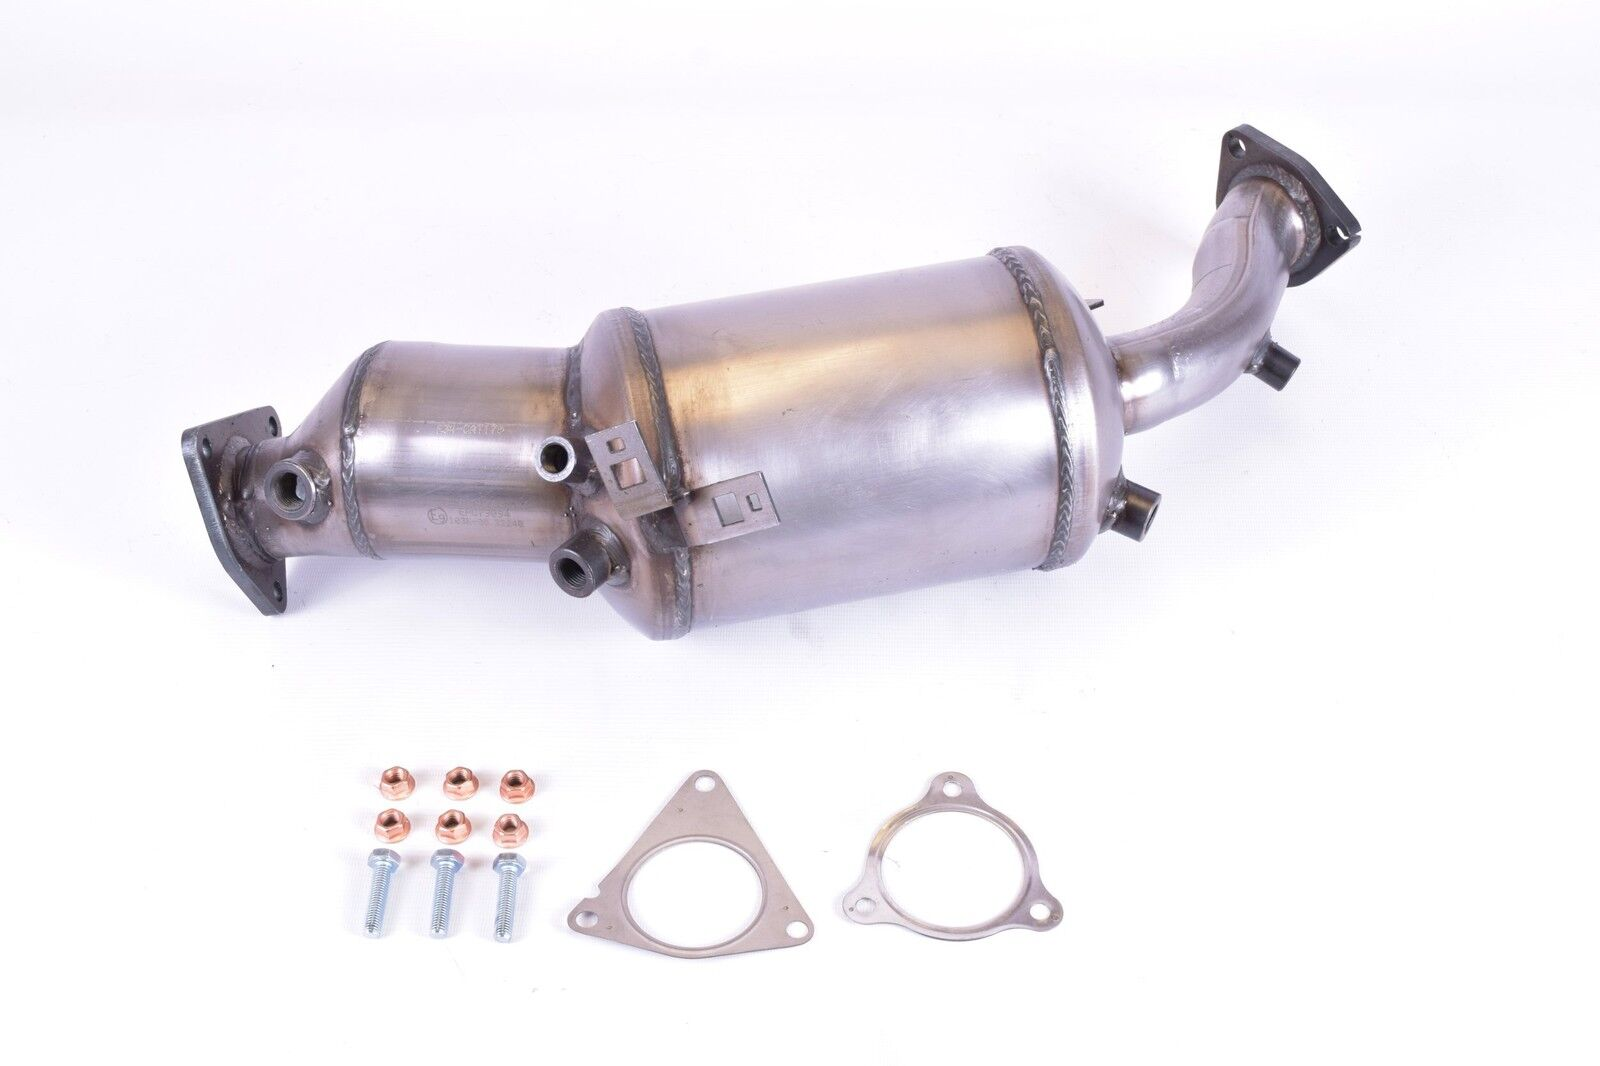 Details about AUDI A4 2 0 TDi 04/08 ON DIESEL PARTICULATE FILTER DPF CAT &  FITTING KIT